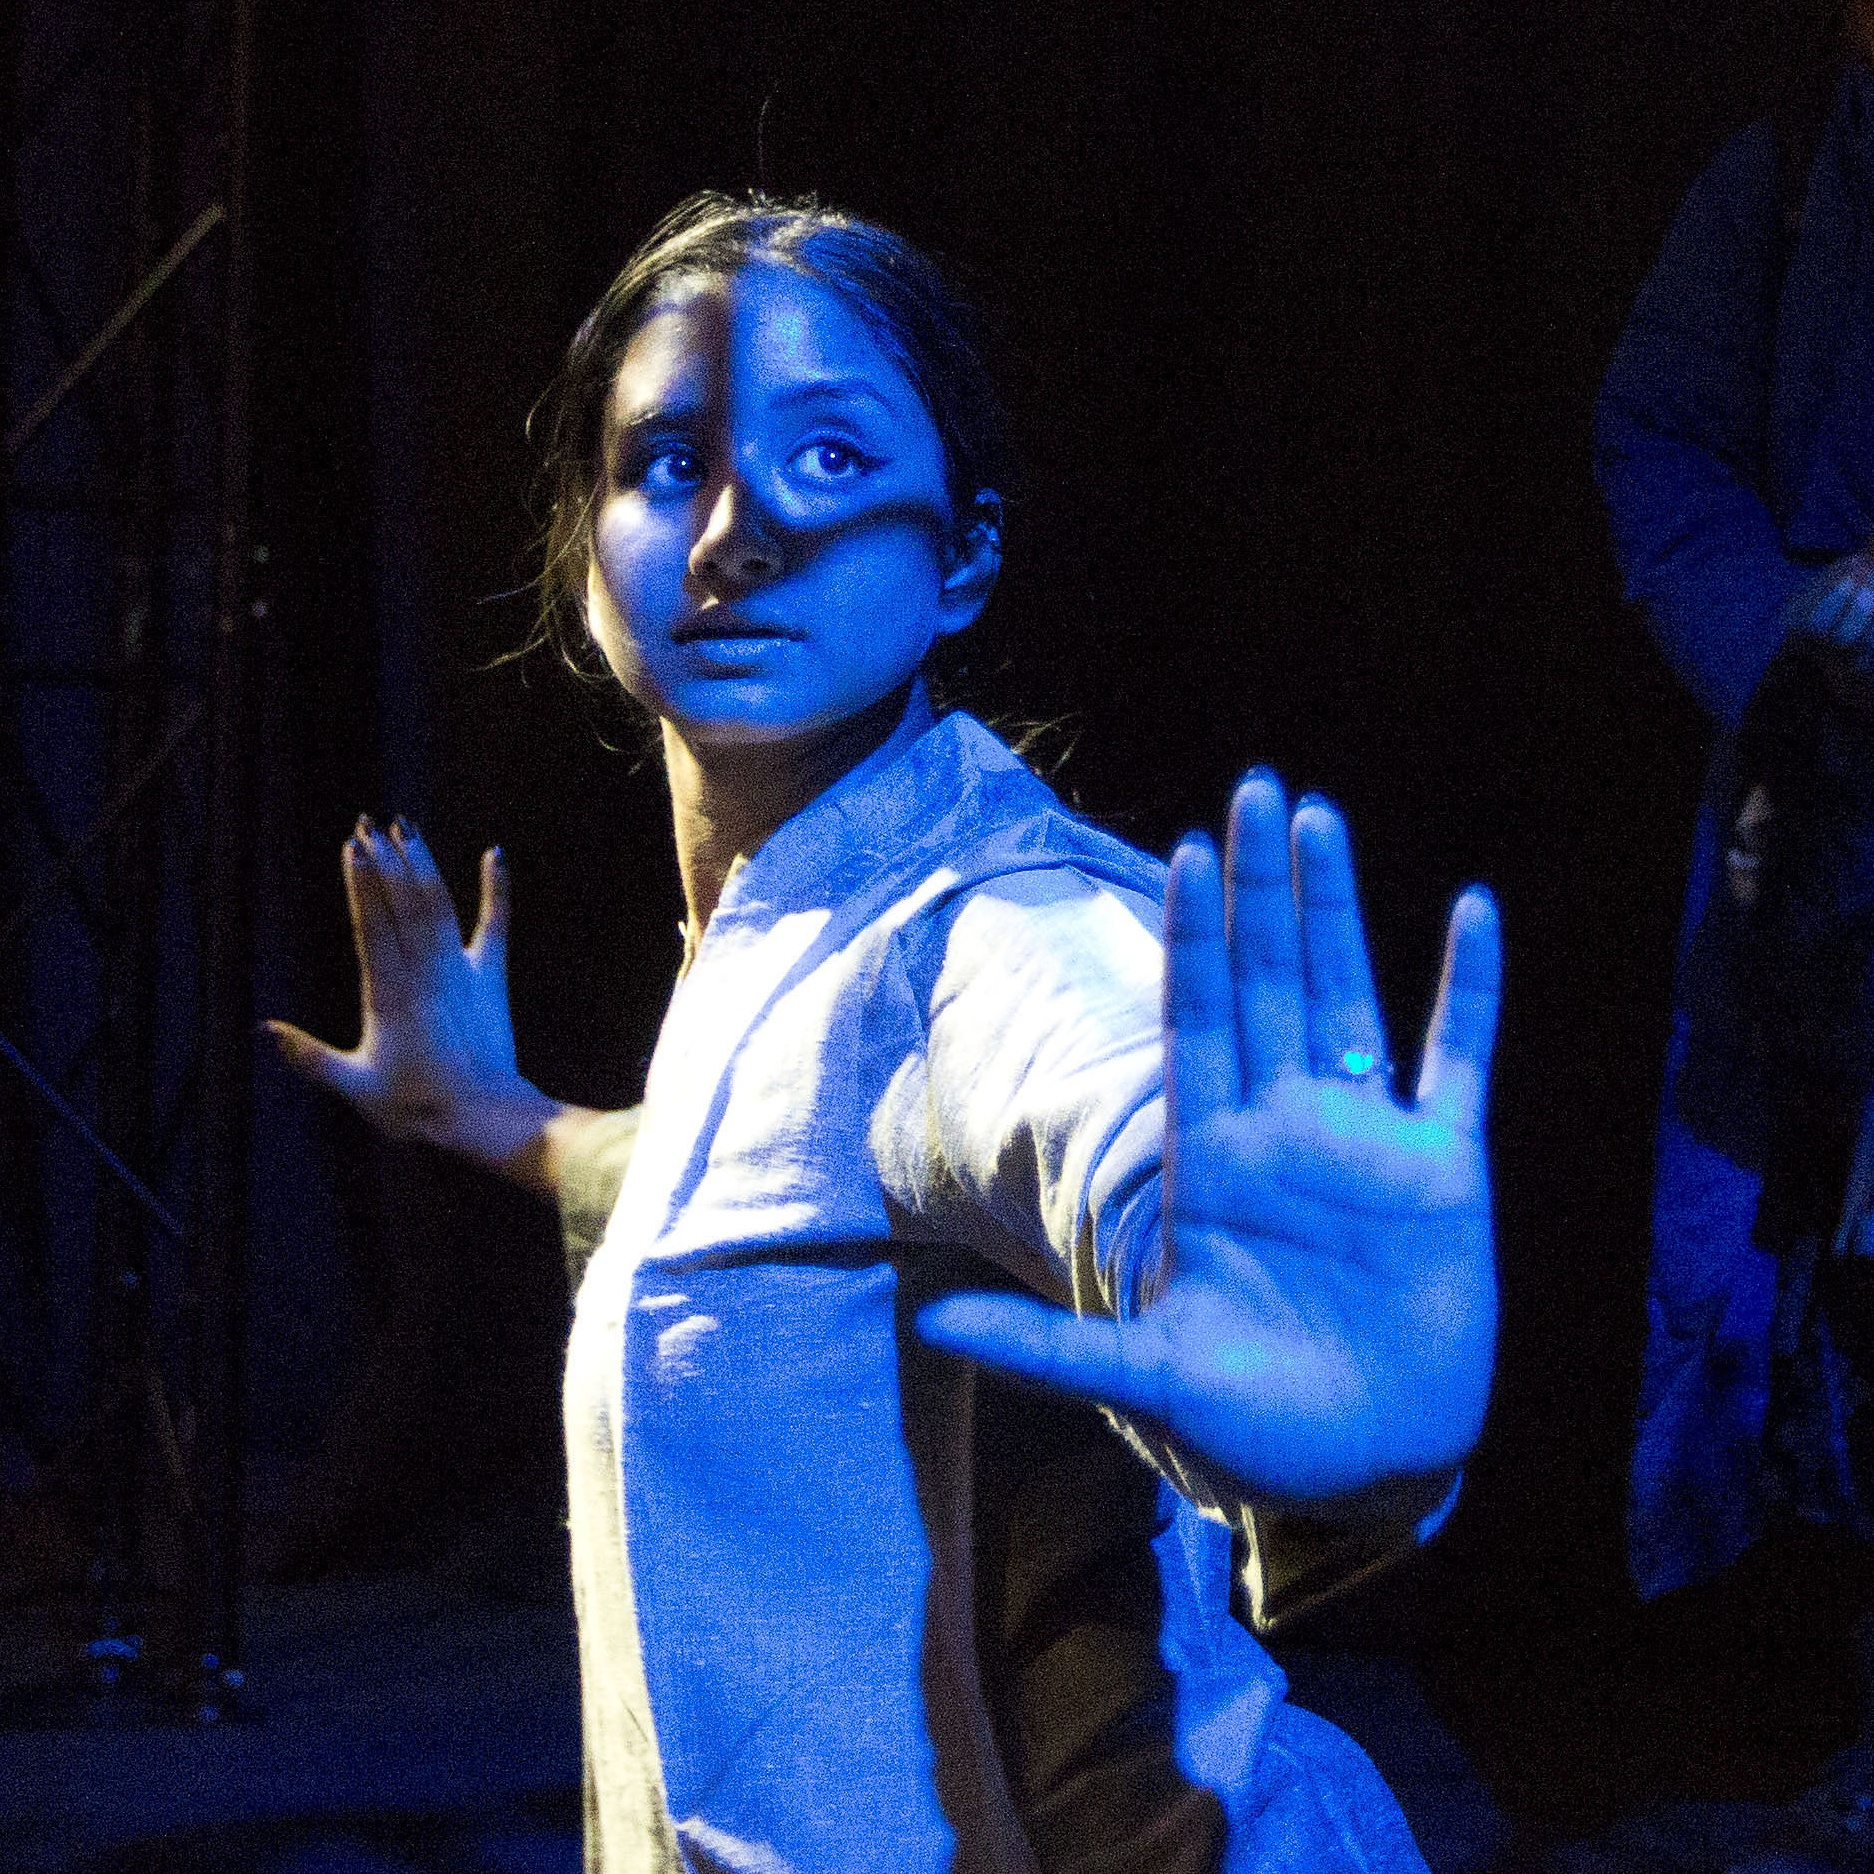 Female performer with arms outstretched under a blue light